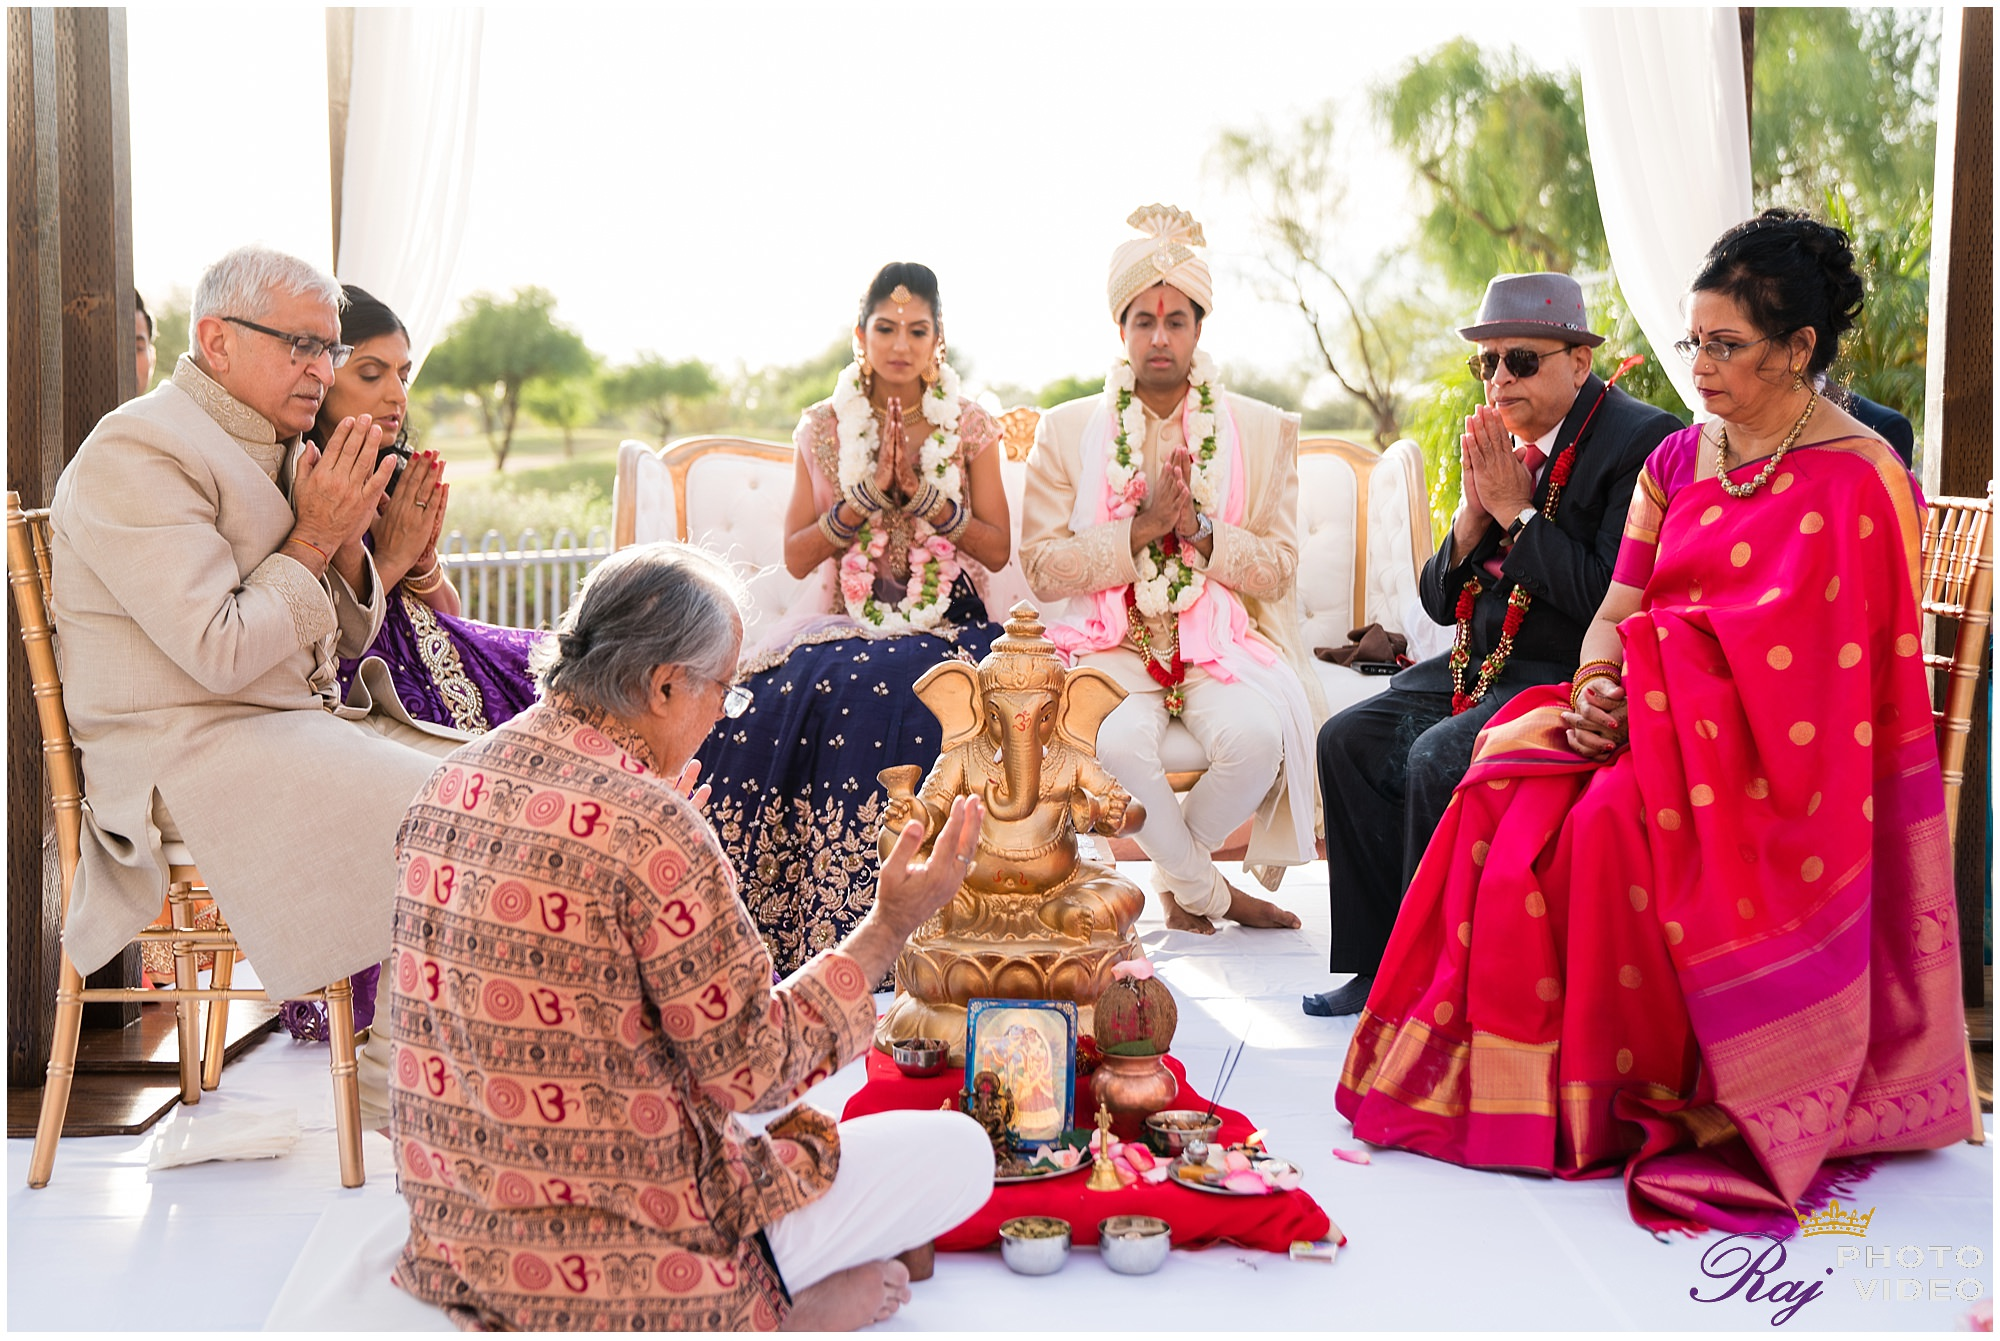 Scottsdale_Marriott_at_McDowell_Mountains_Arizona_Indian_Wedding_Sapna_Shyam-52.jpg